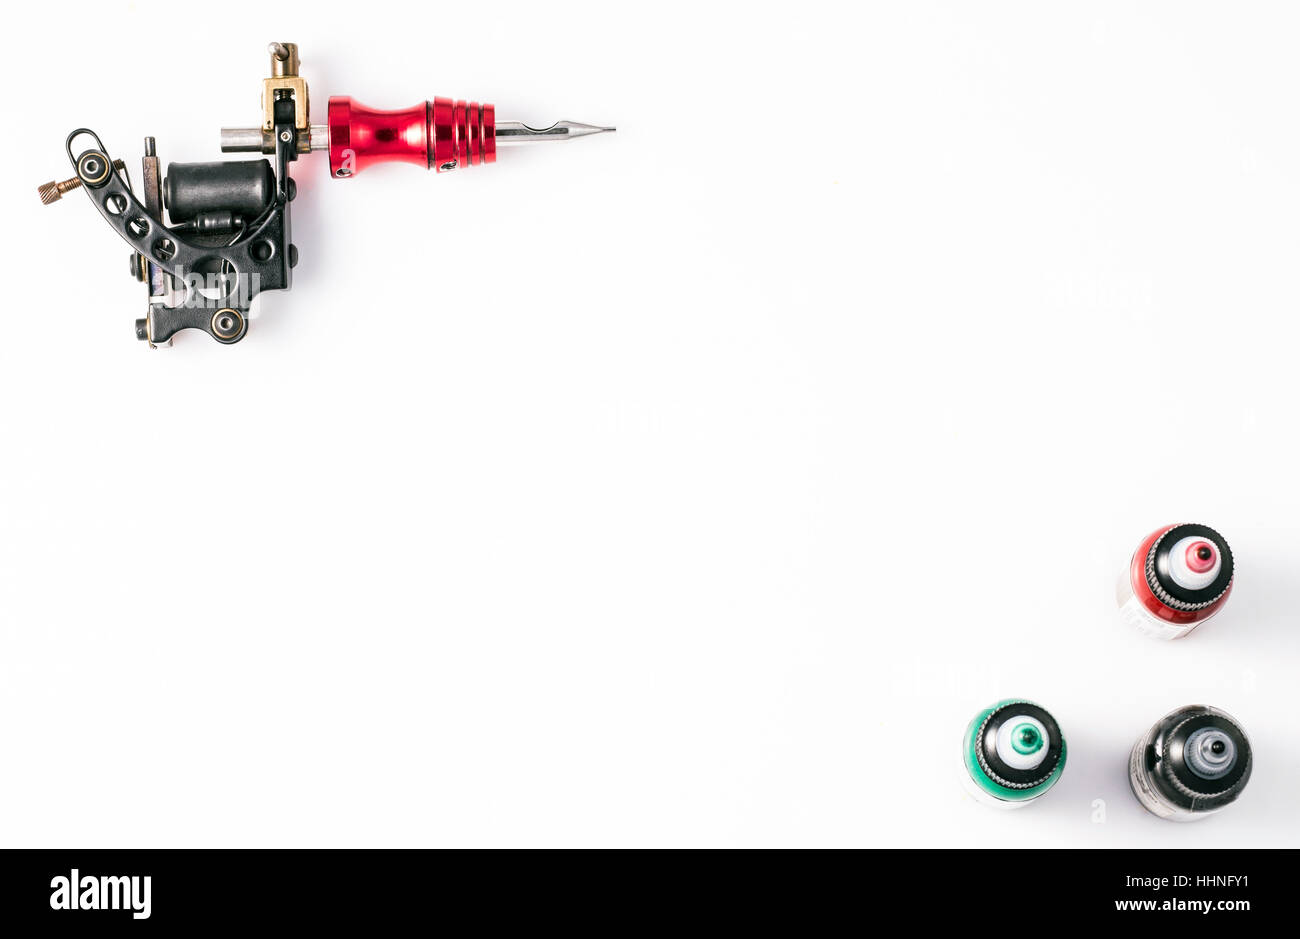 Tattoo Machine On White Background Copy Space Stock Photo Machines Diagram Pictures